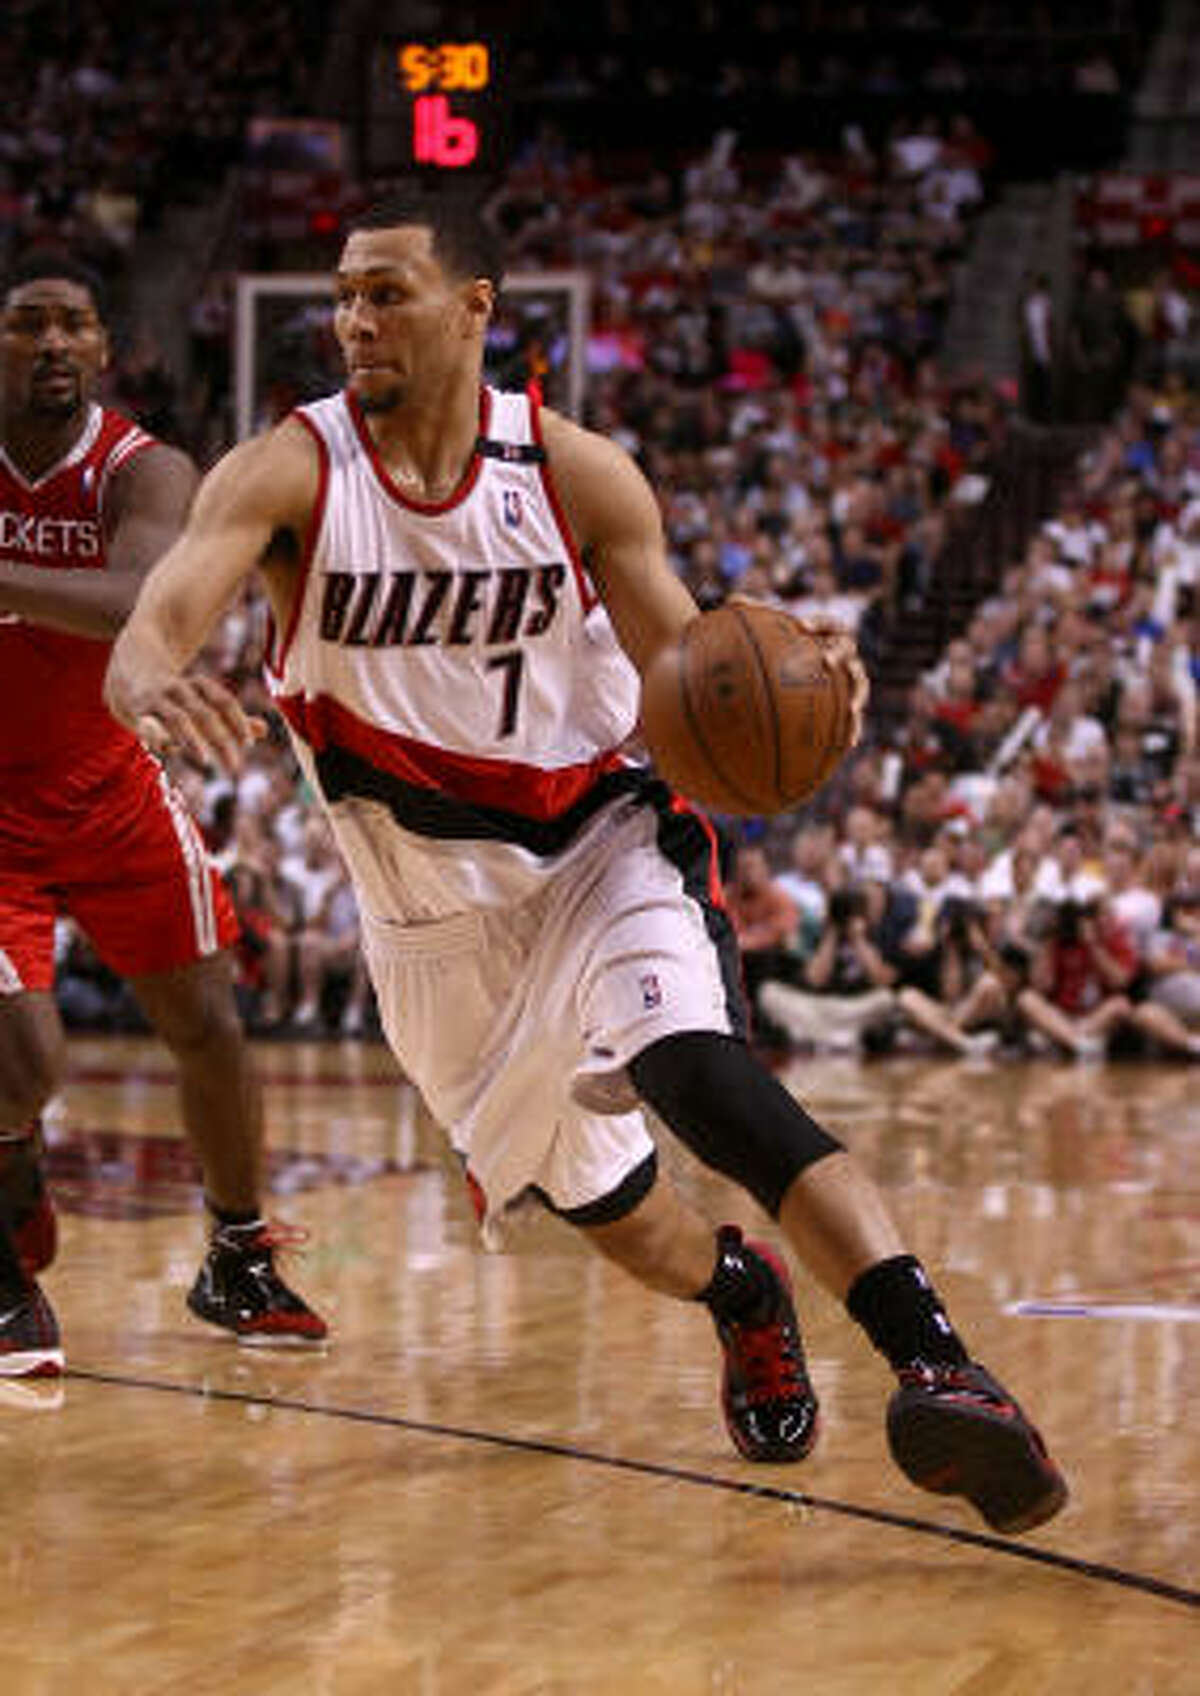 Portland Trail Blazers Led by Brandon Roy (7), Portland already was loaded with talent. In the offseason, it added free agent Miller, quietly one of the better point guards in the NBA over the past few seasons. Predicted finish: 58-24 (first in Northwest, second in West).